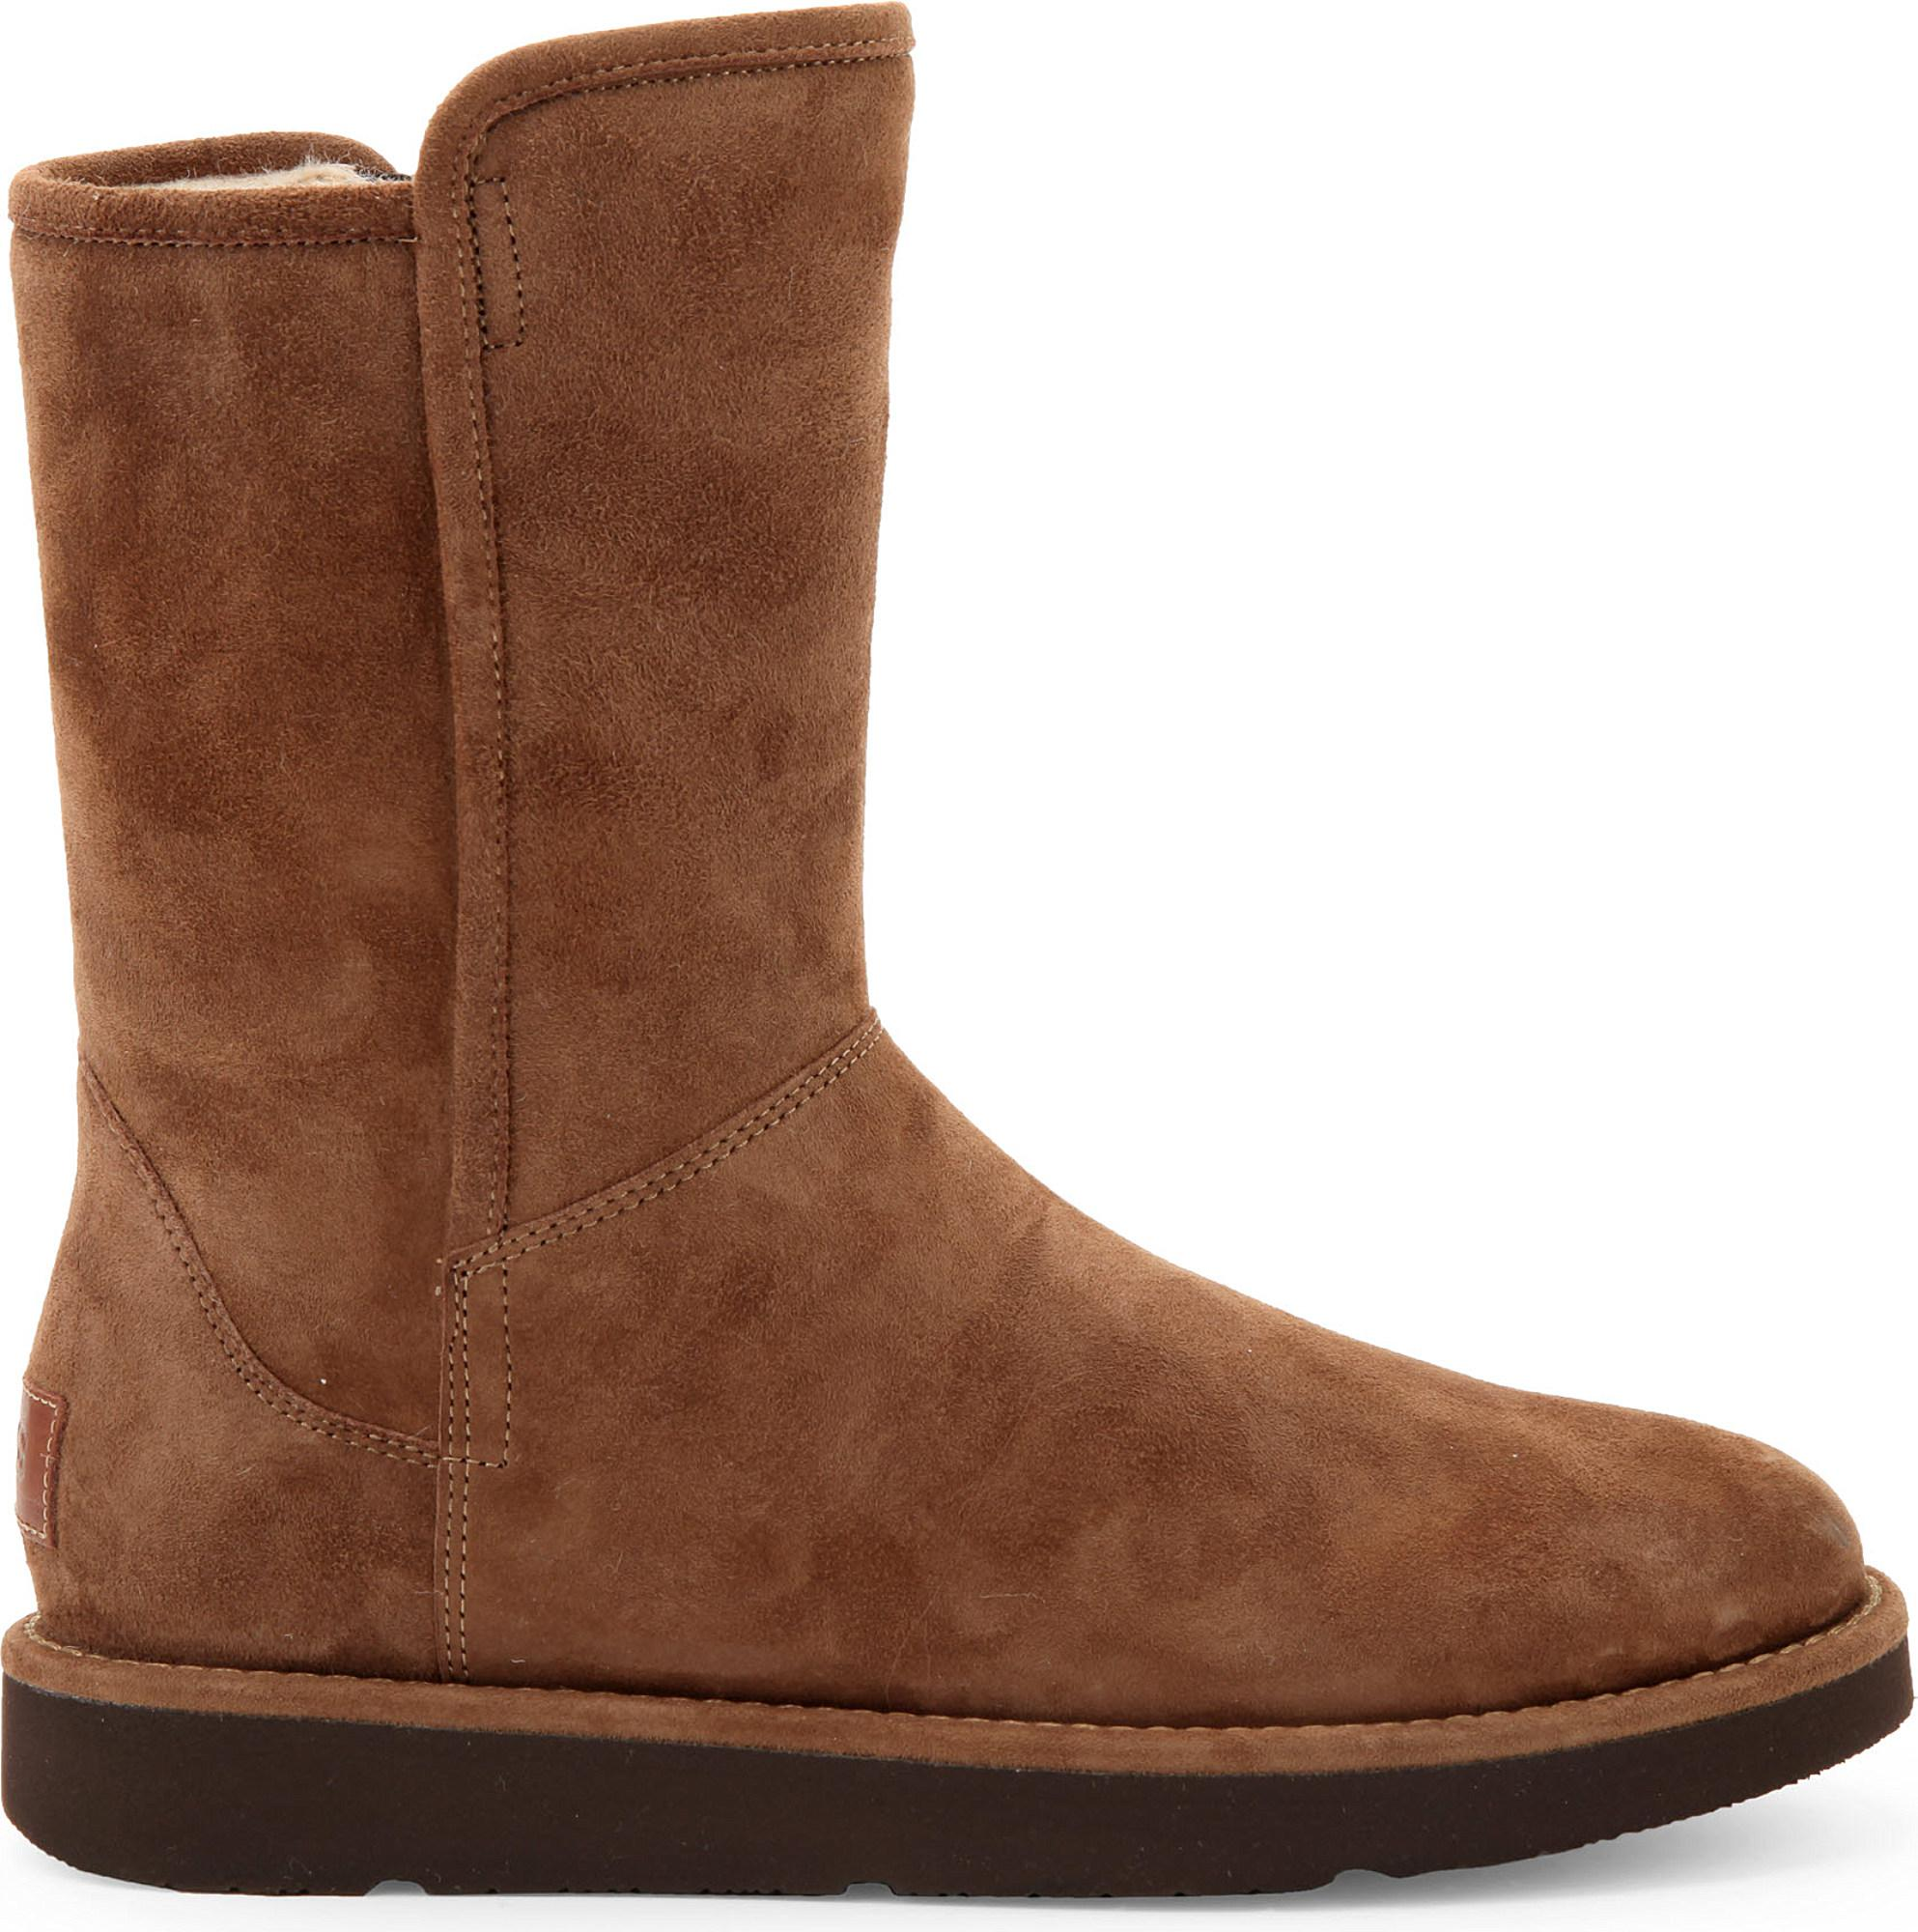 Ugg Australia Abree Short Ankle Boots Color: Brown